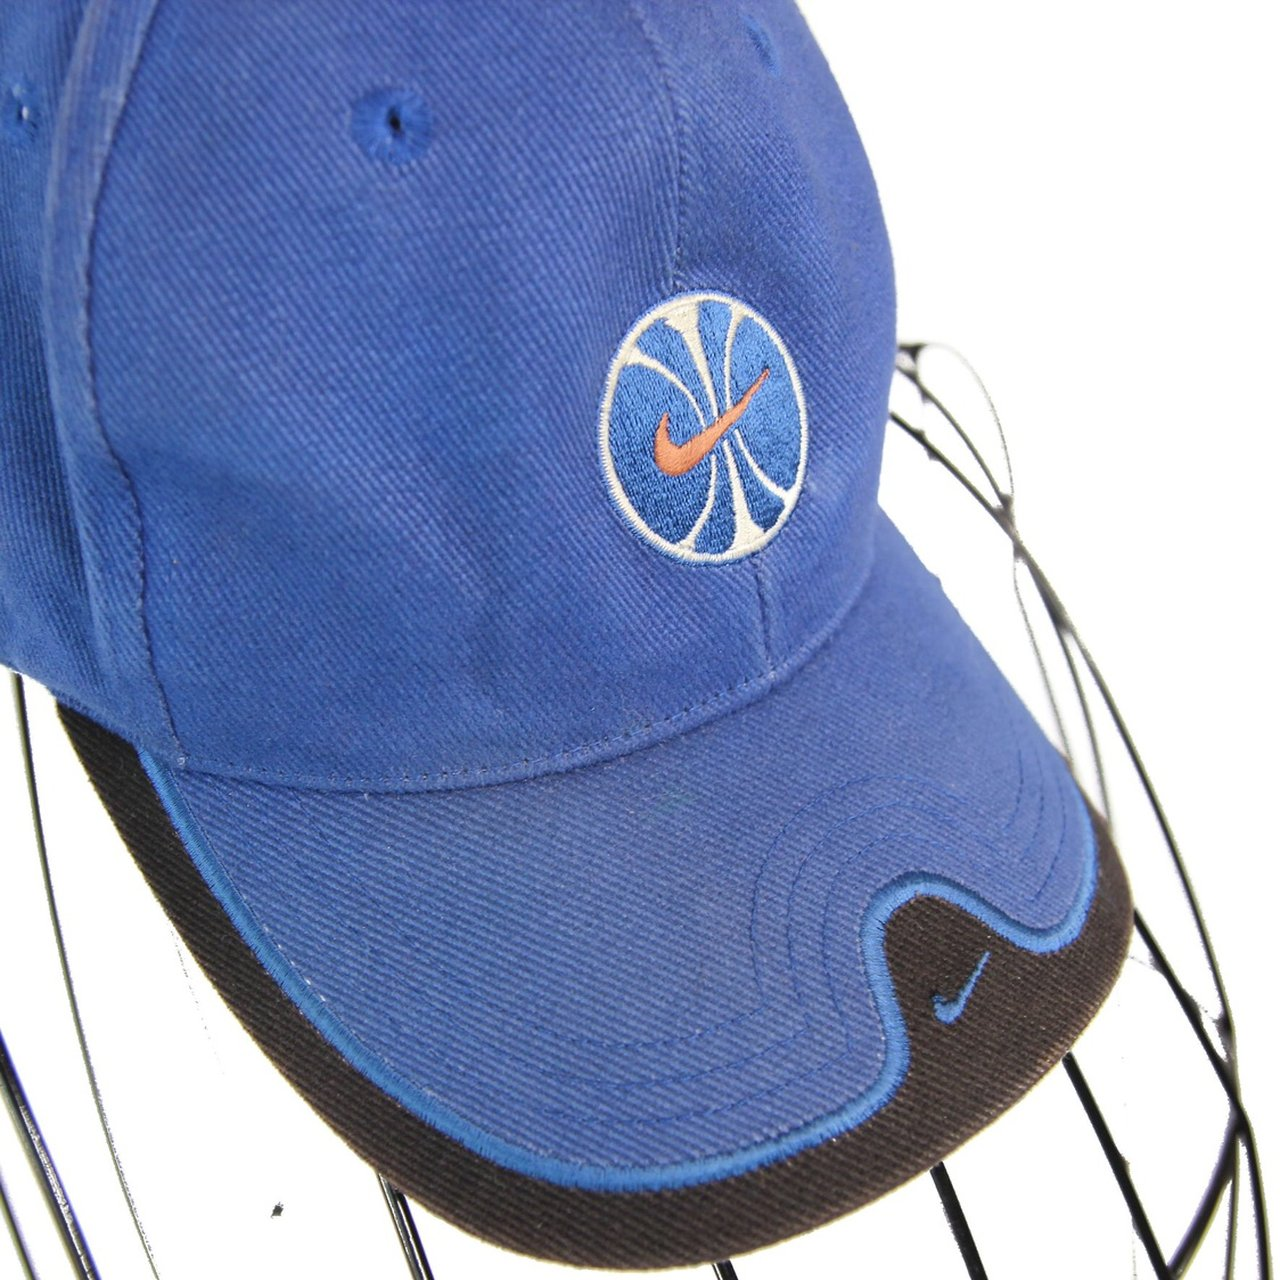 8c9dbd28a25 Vintage Nike swoosh basketball dad hat. Has